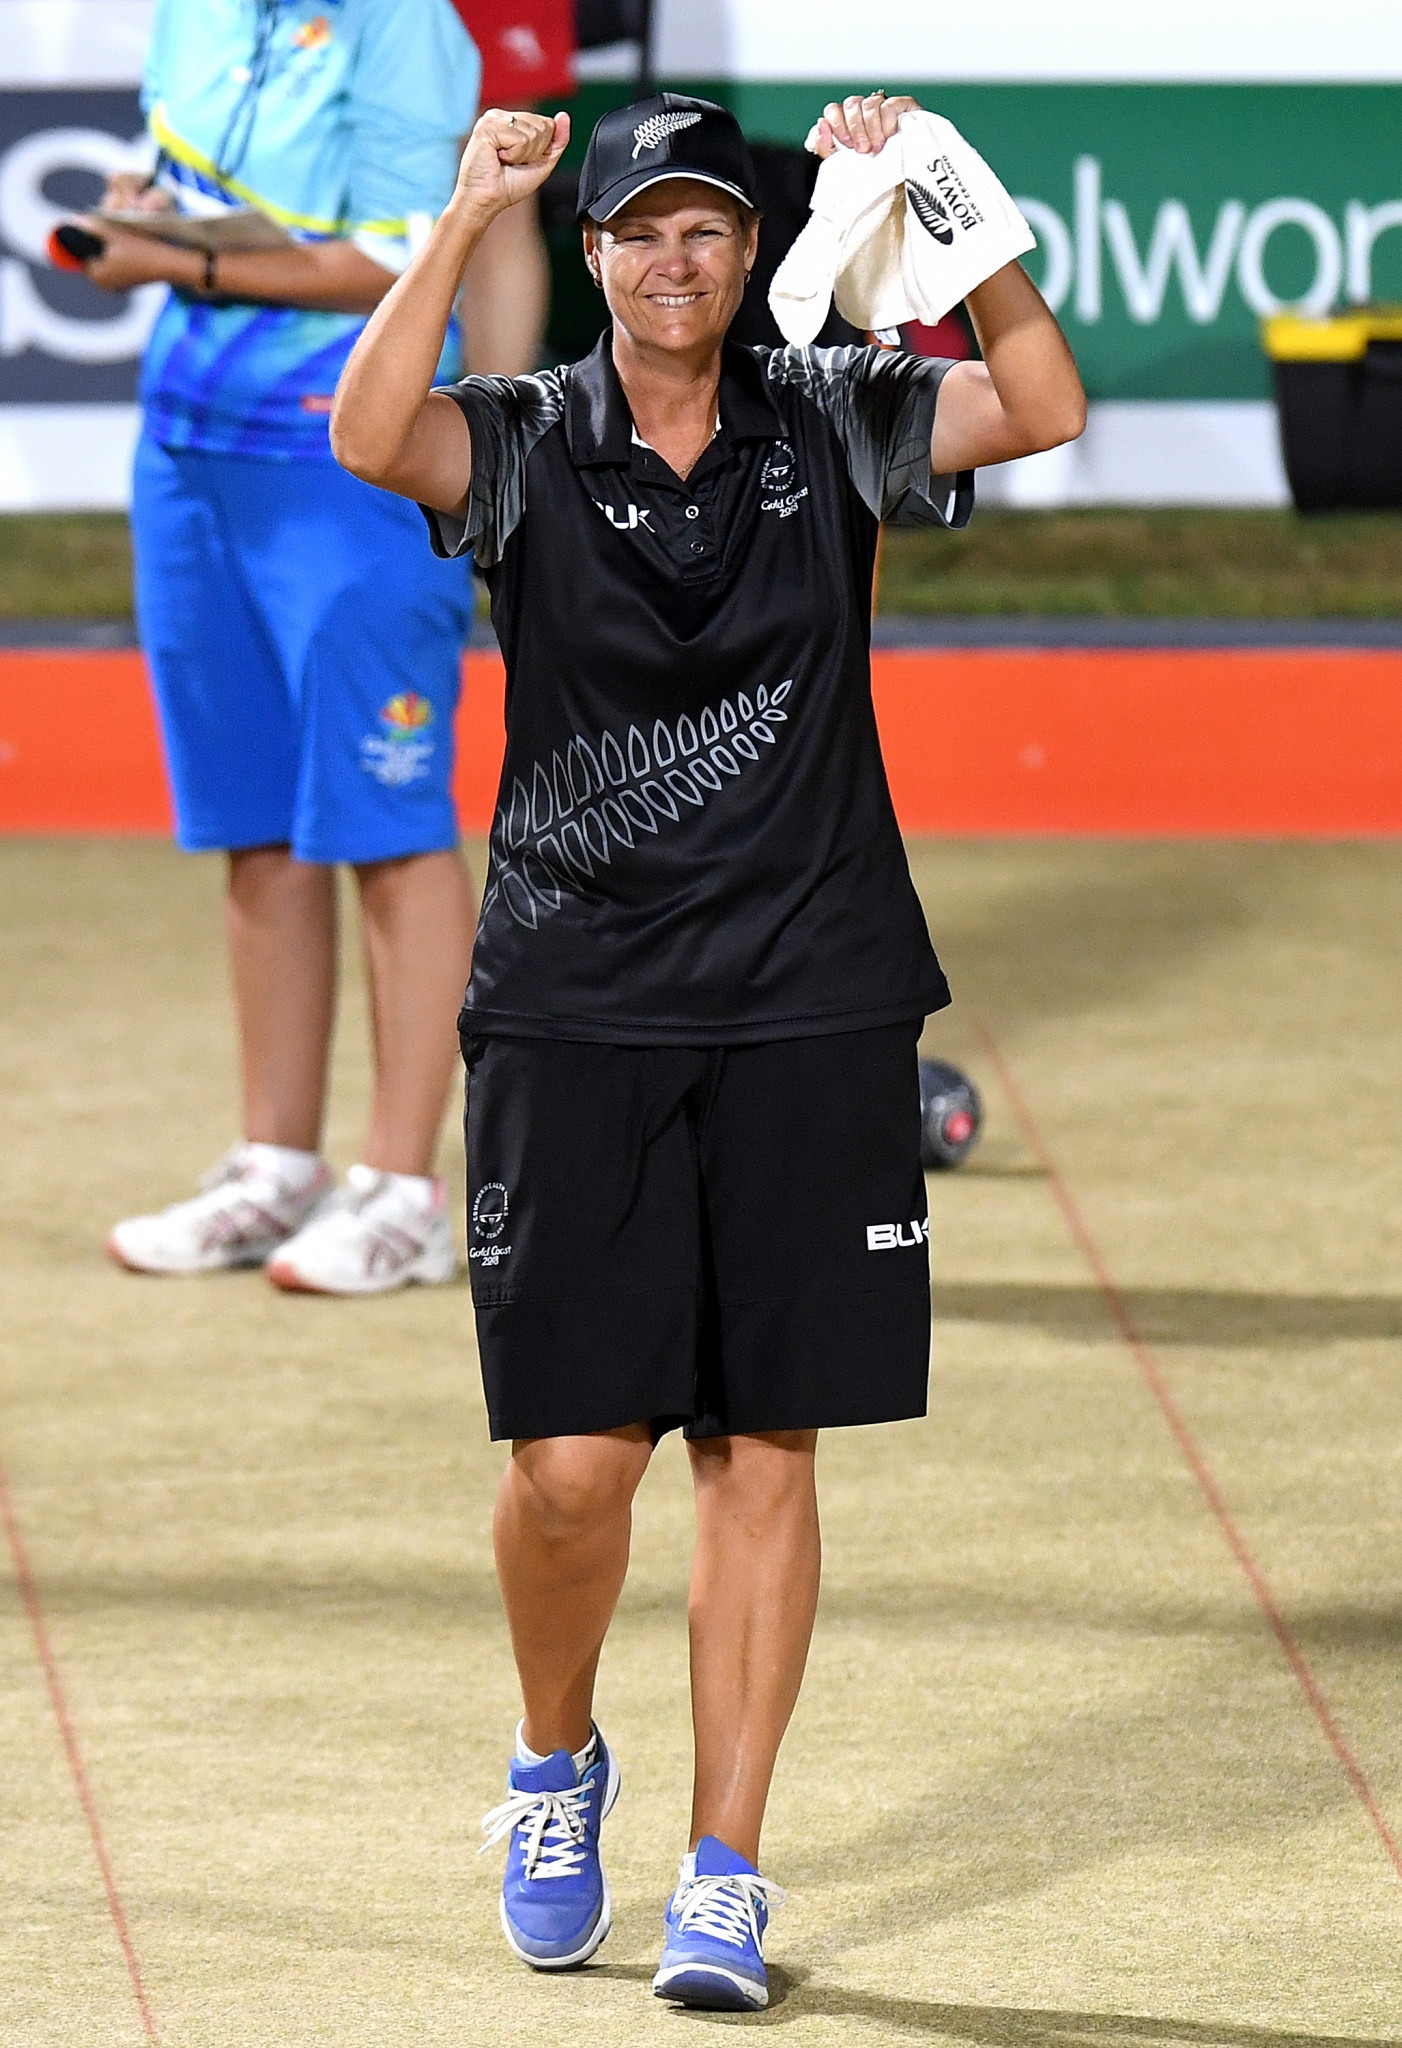 Jo Edwards of New Zealand has finished top of the women's section one at the World Bowls Singles Champion of Champions to automatically qualify for the semi-finals ©Getty Images